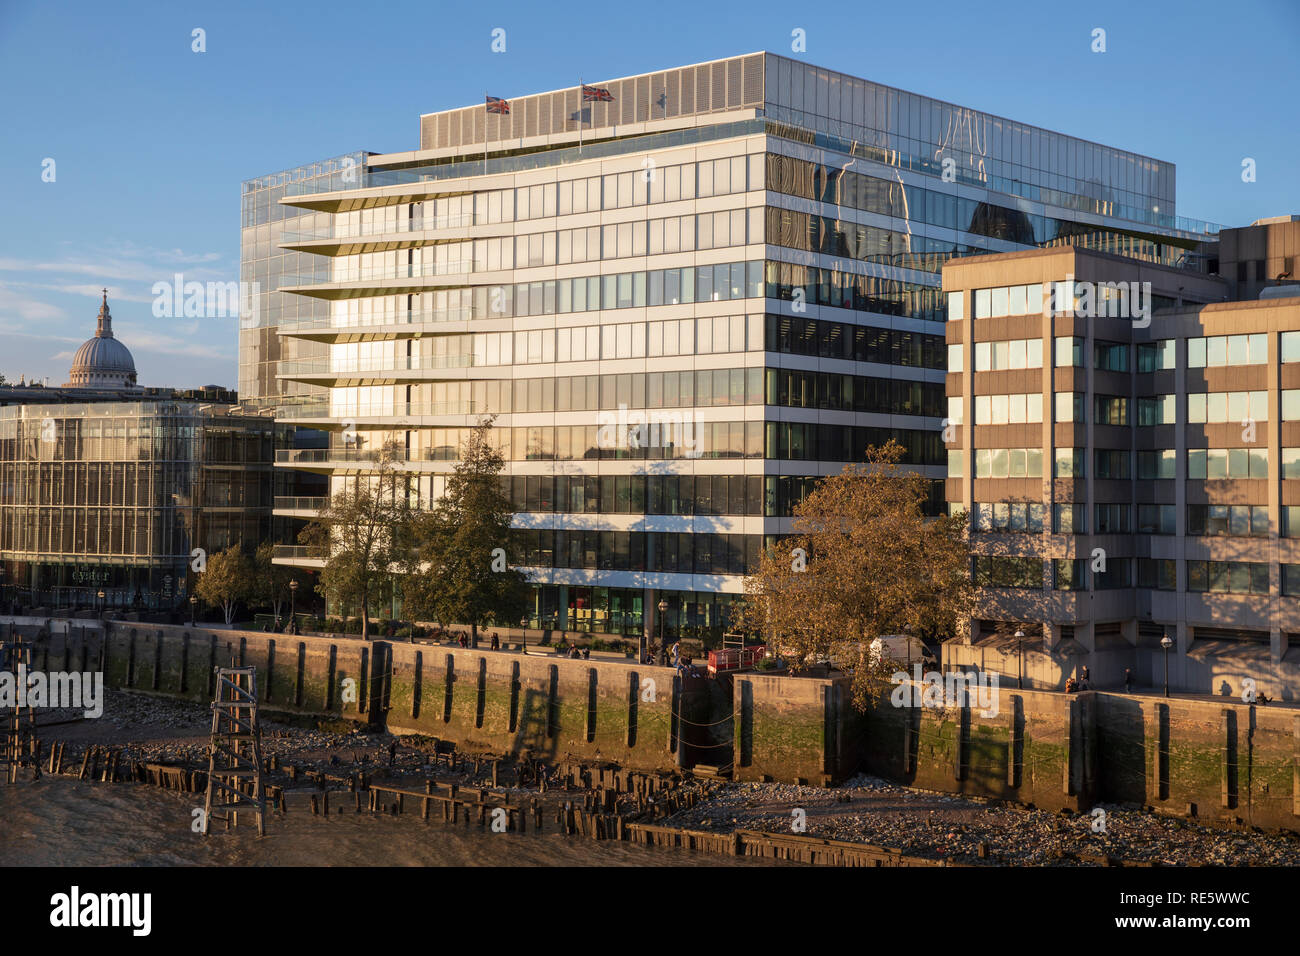 Riverbank House in London, England. - Stock Image